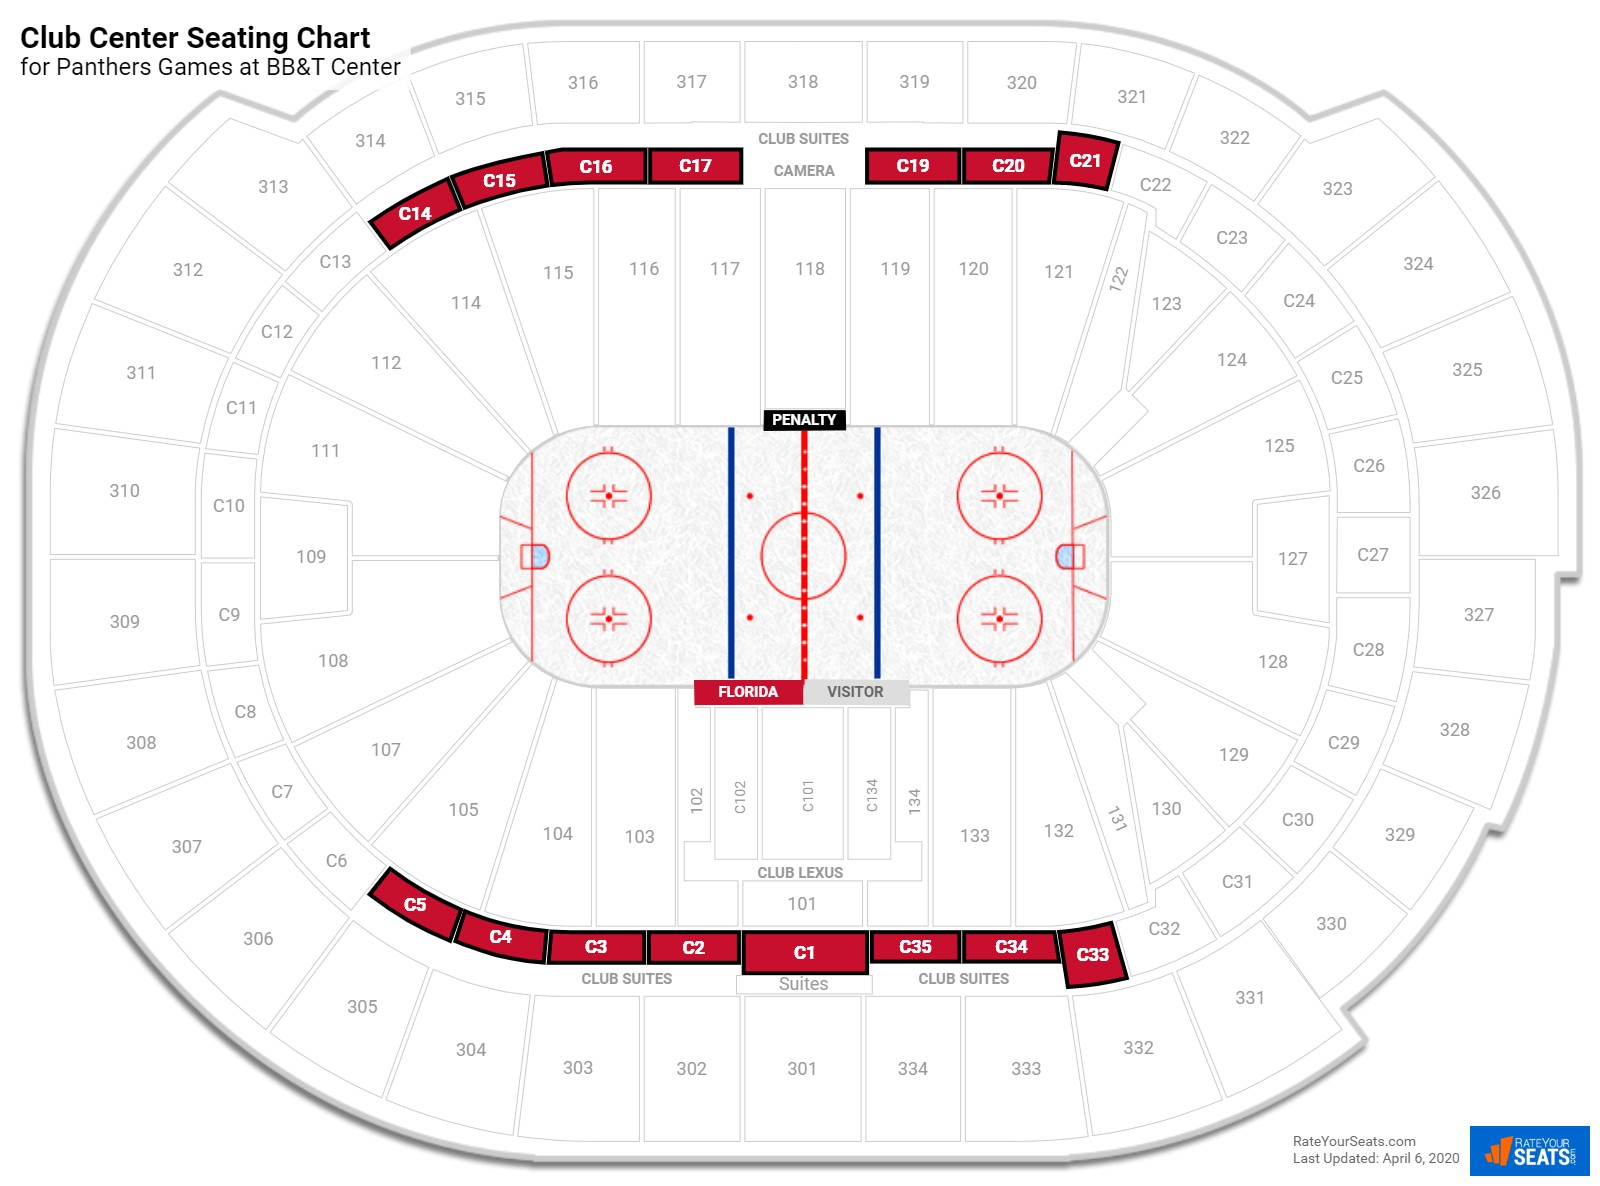 BB&T Center Club Center seating chart